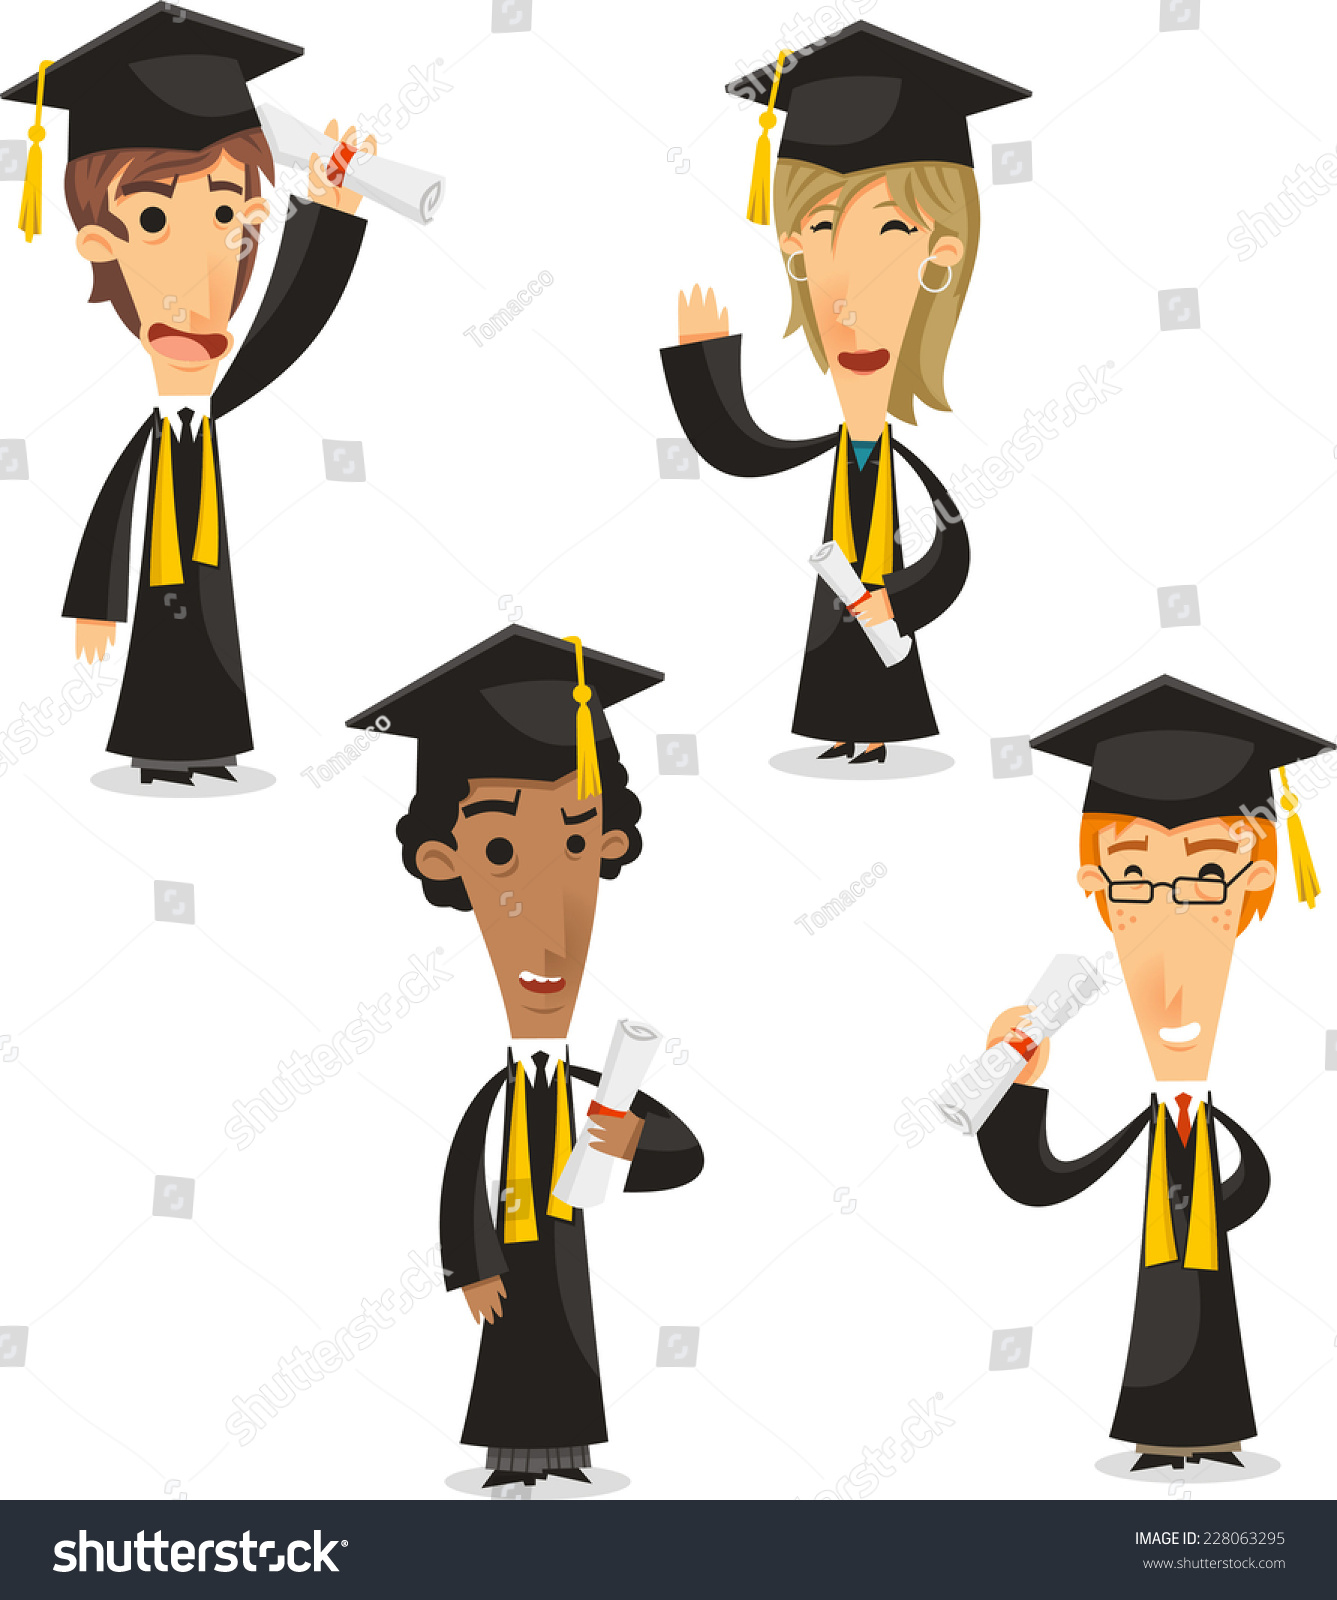 How long do you have to go to school for a Bachelor's degree? a Masters? Ph. D?